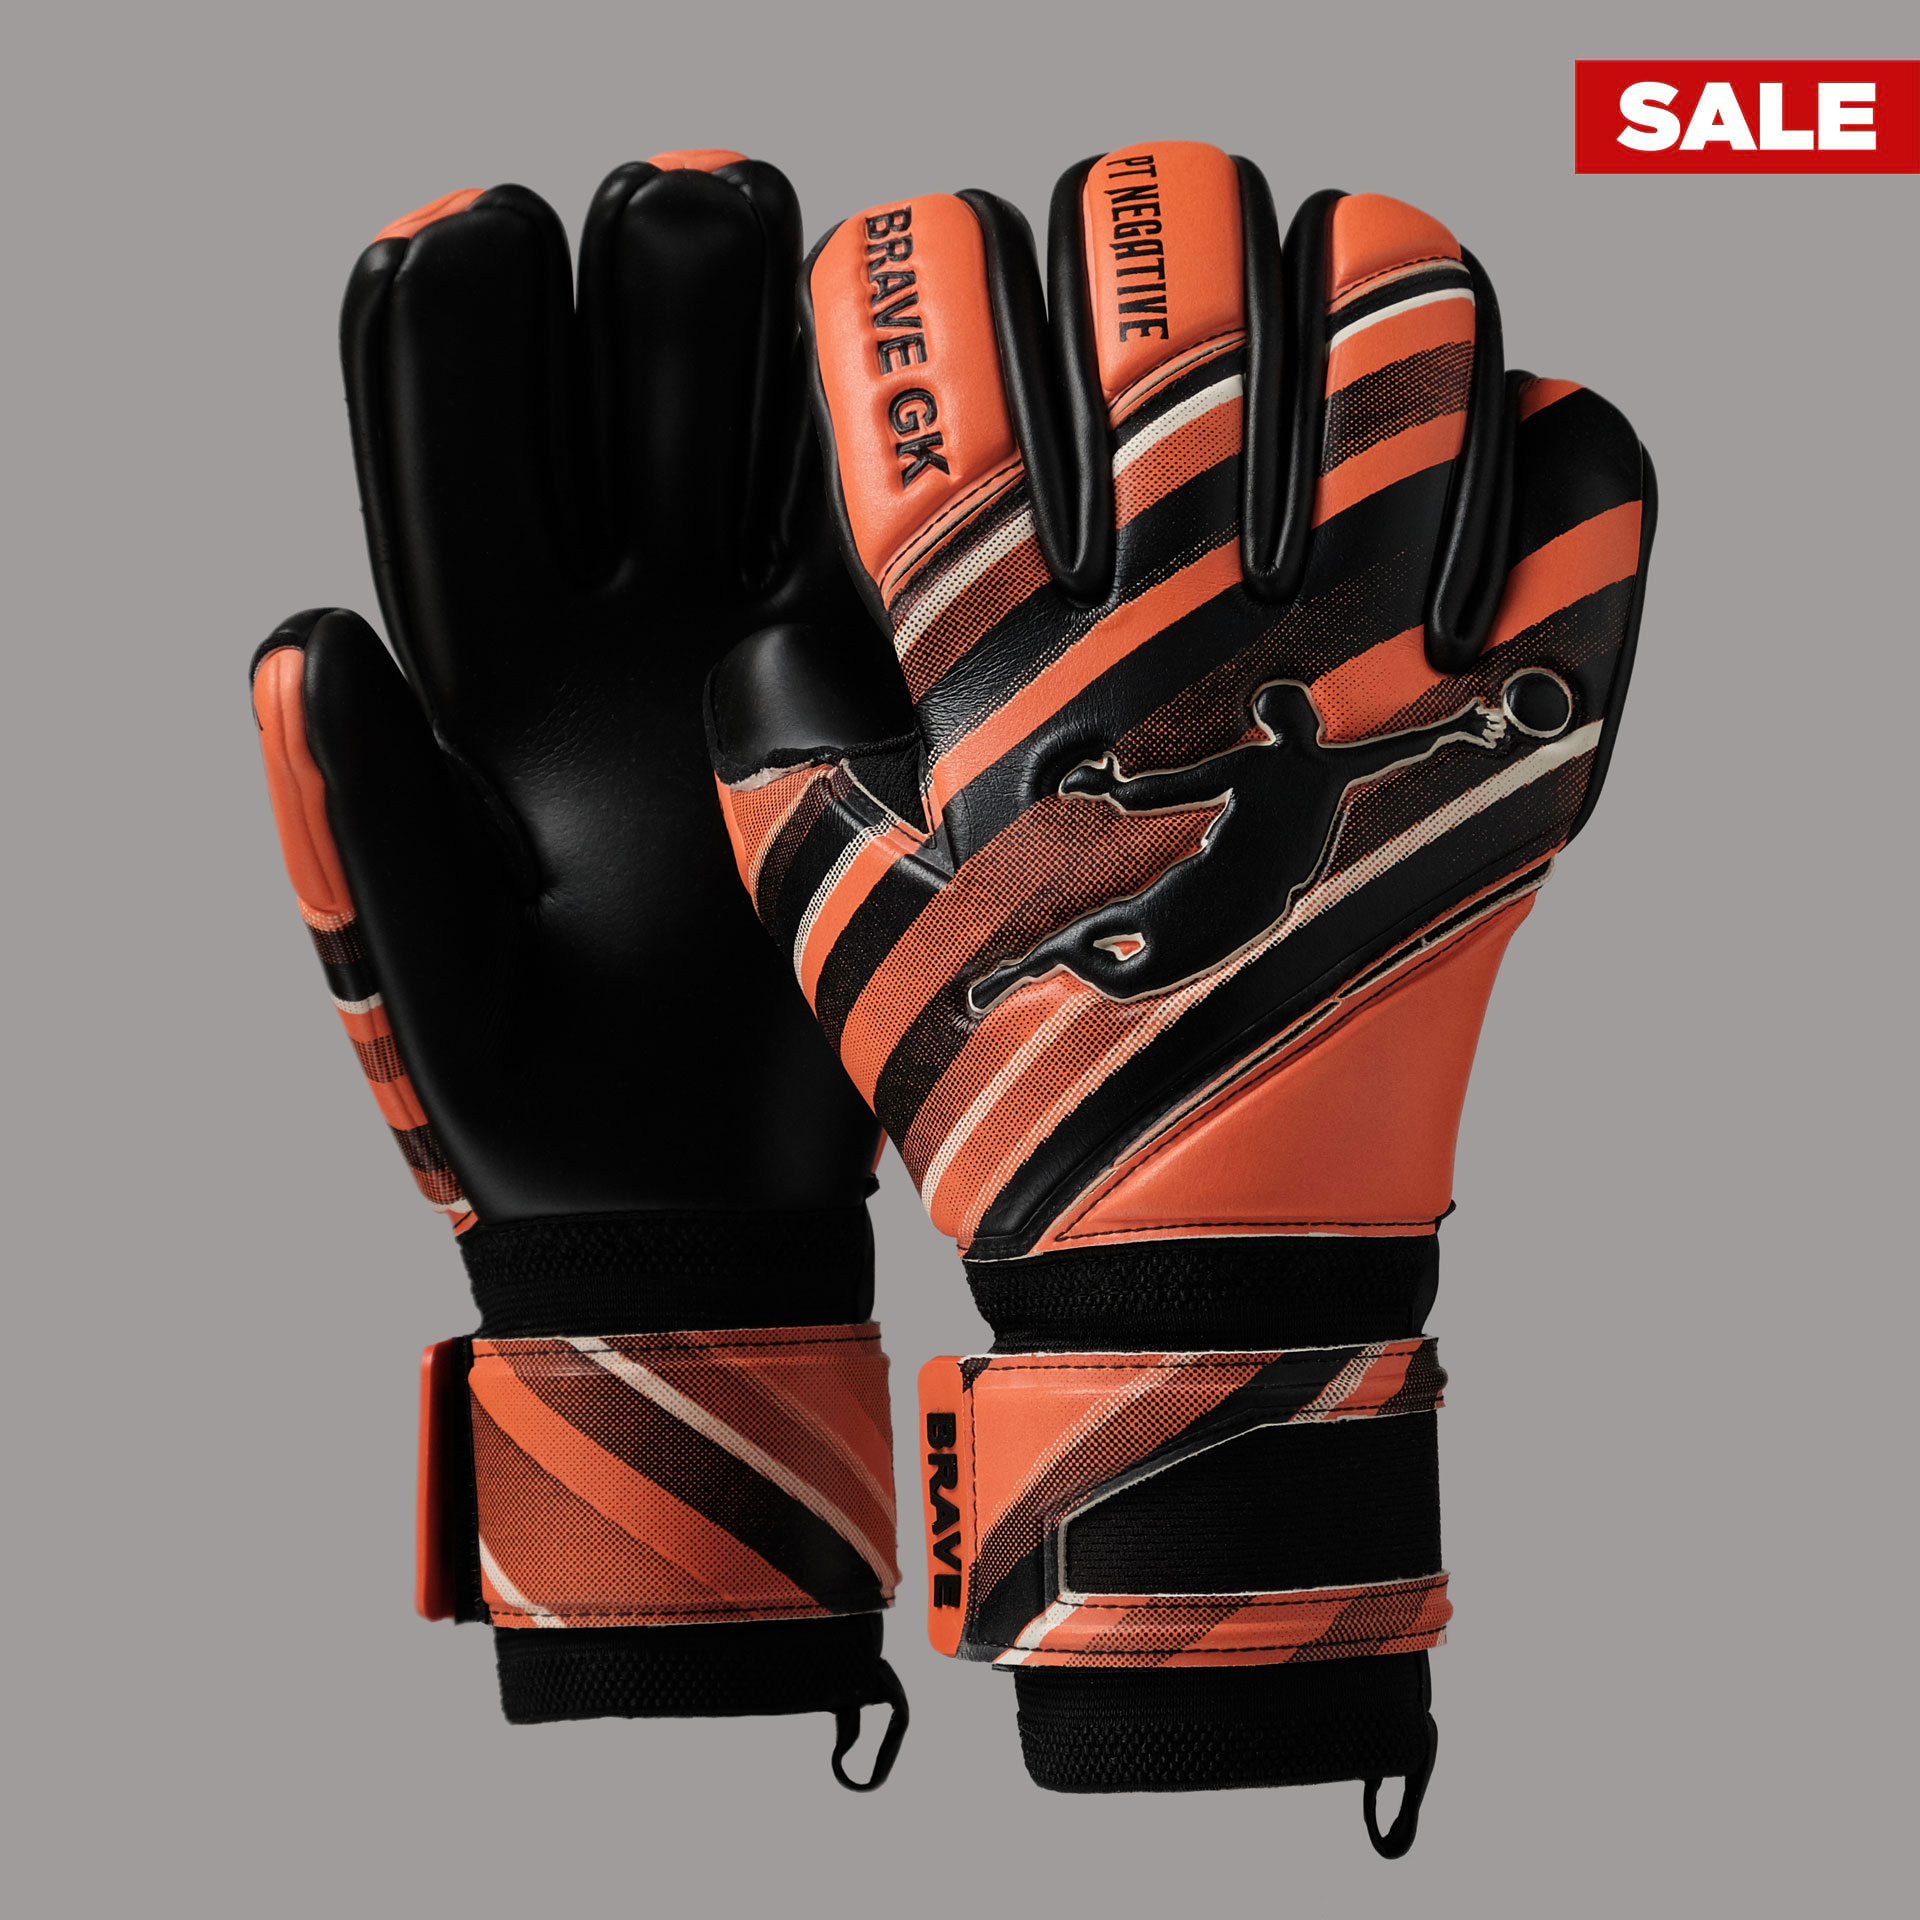 Brave GK Power Train Orange-0-Brave GK